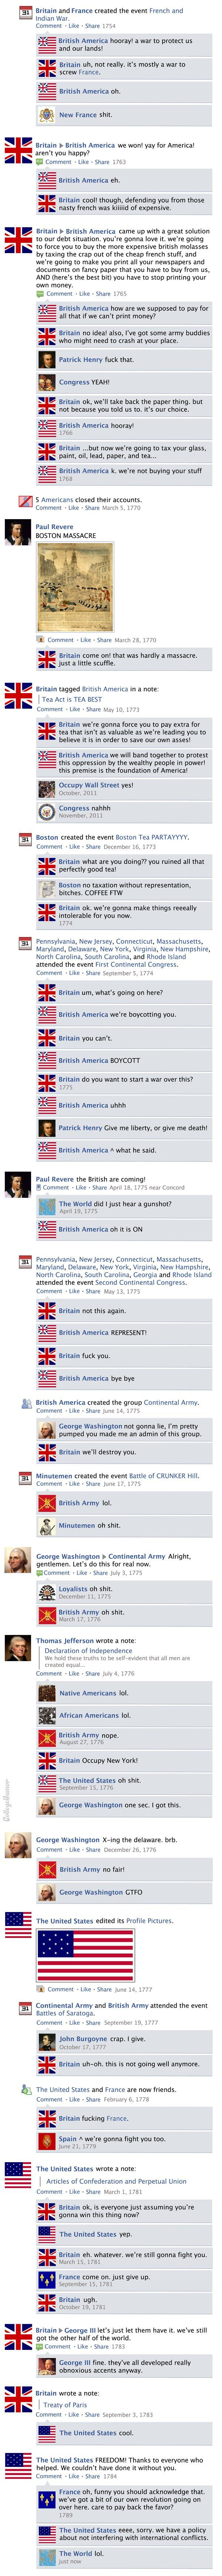 Revolutionary War Facebook News Feed